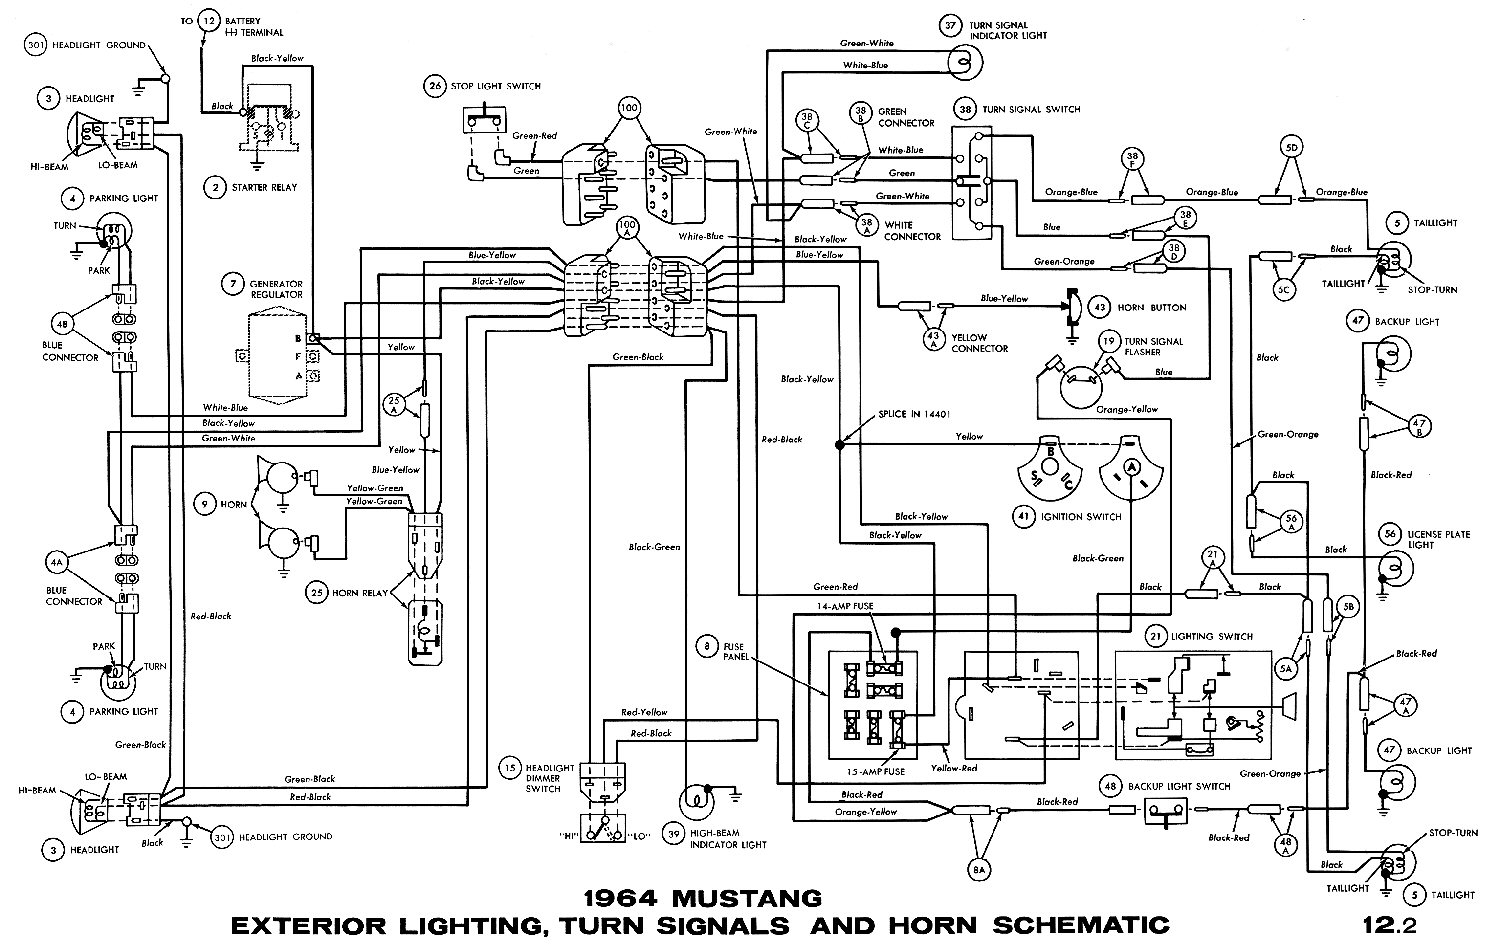 1969 Ford Mustang Wiring Diagram Data Schema 1965 Thunderbird Free Schematic Ranchero